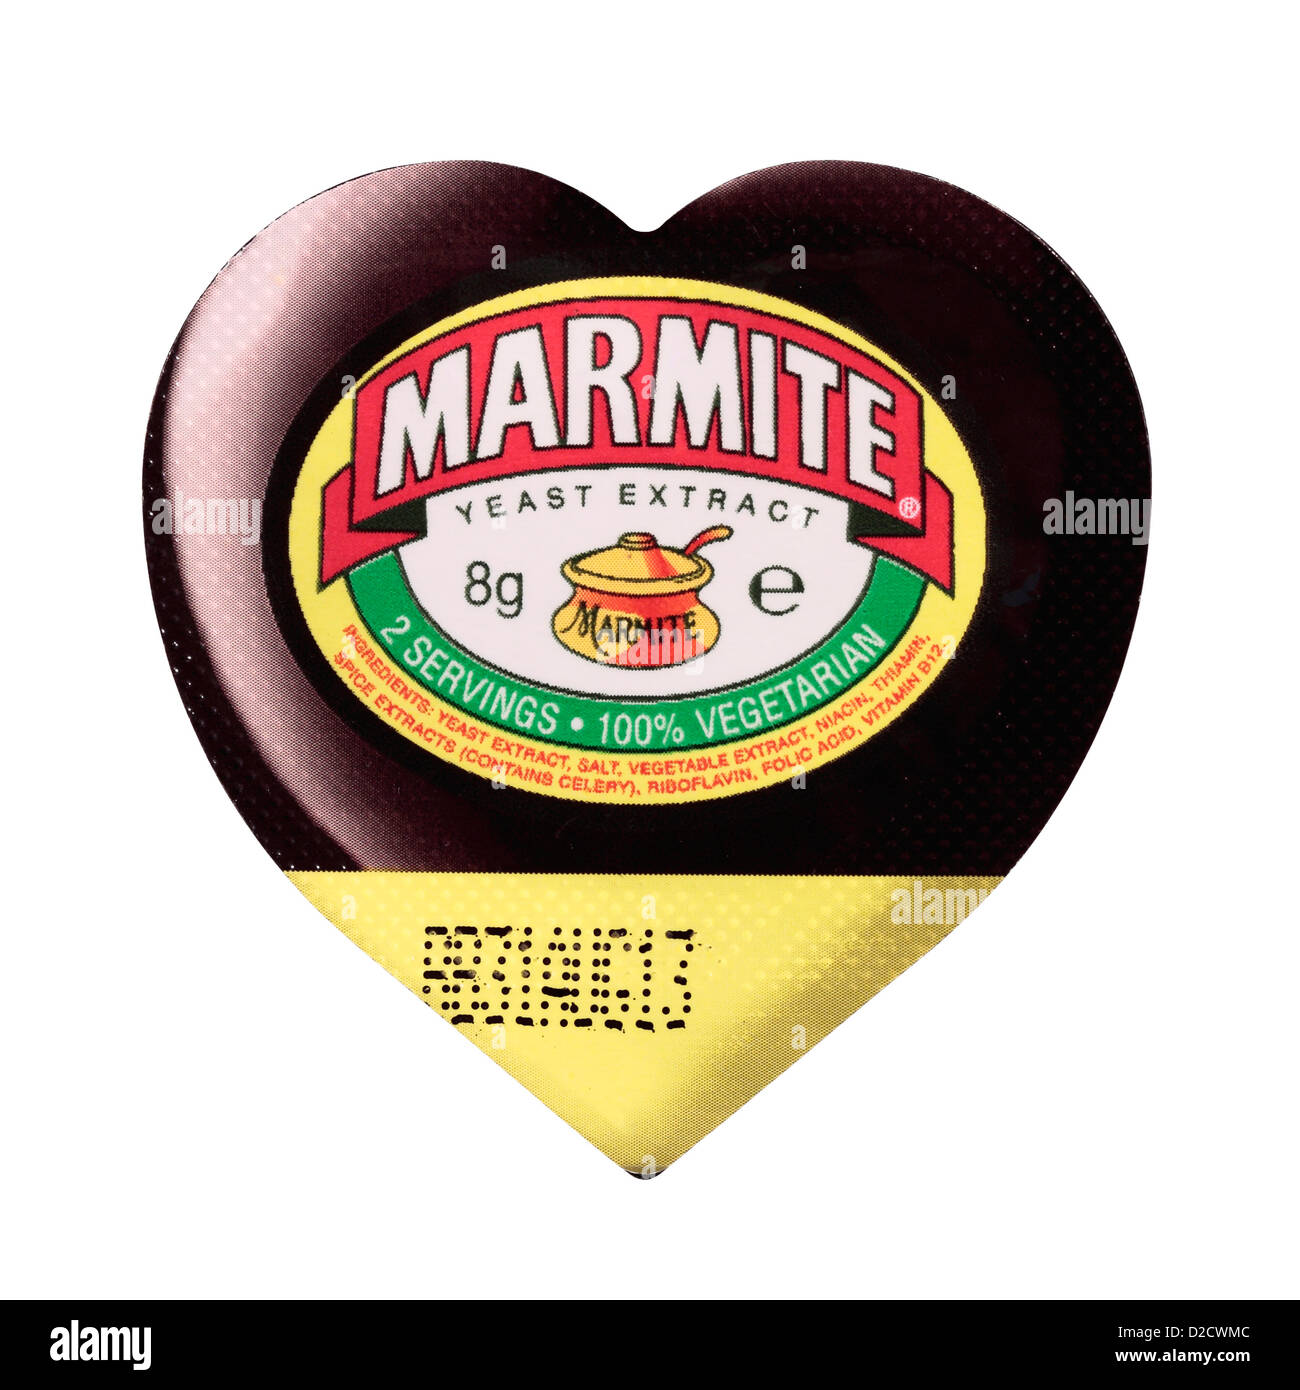 Small Heart Shaped Individual Portion Marmite Tub isolated on white background - Stock Image